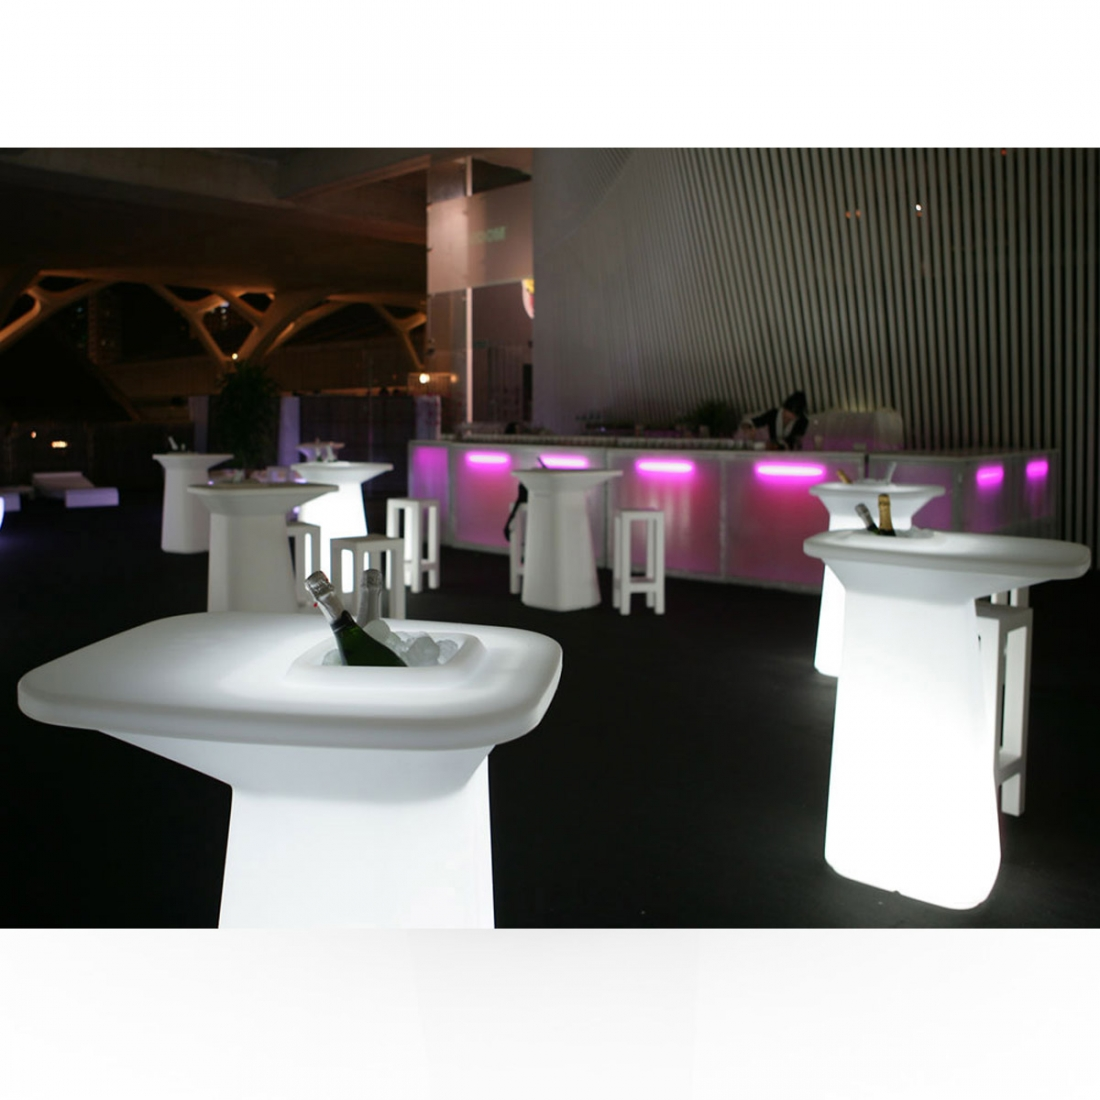 Table haute avec rangement design led rgb moma vondom for Table d exterieur design